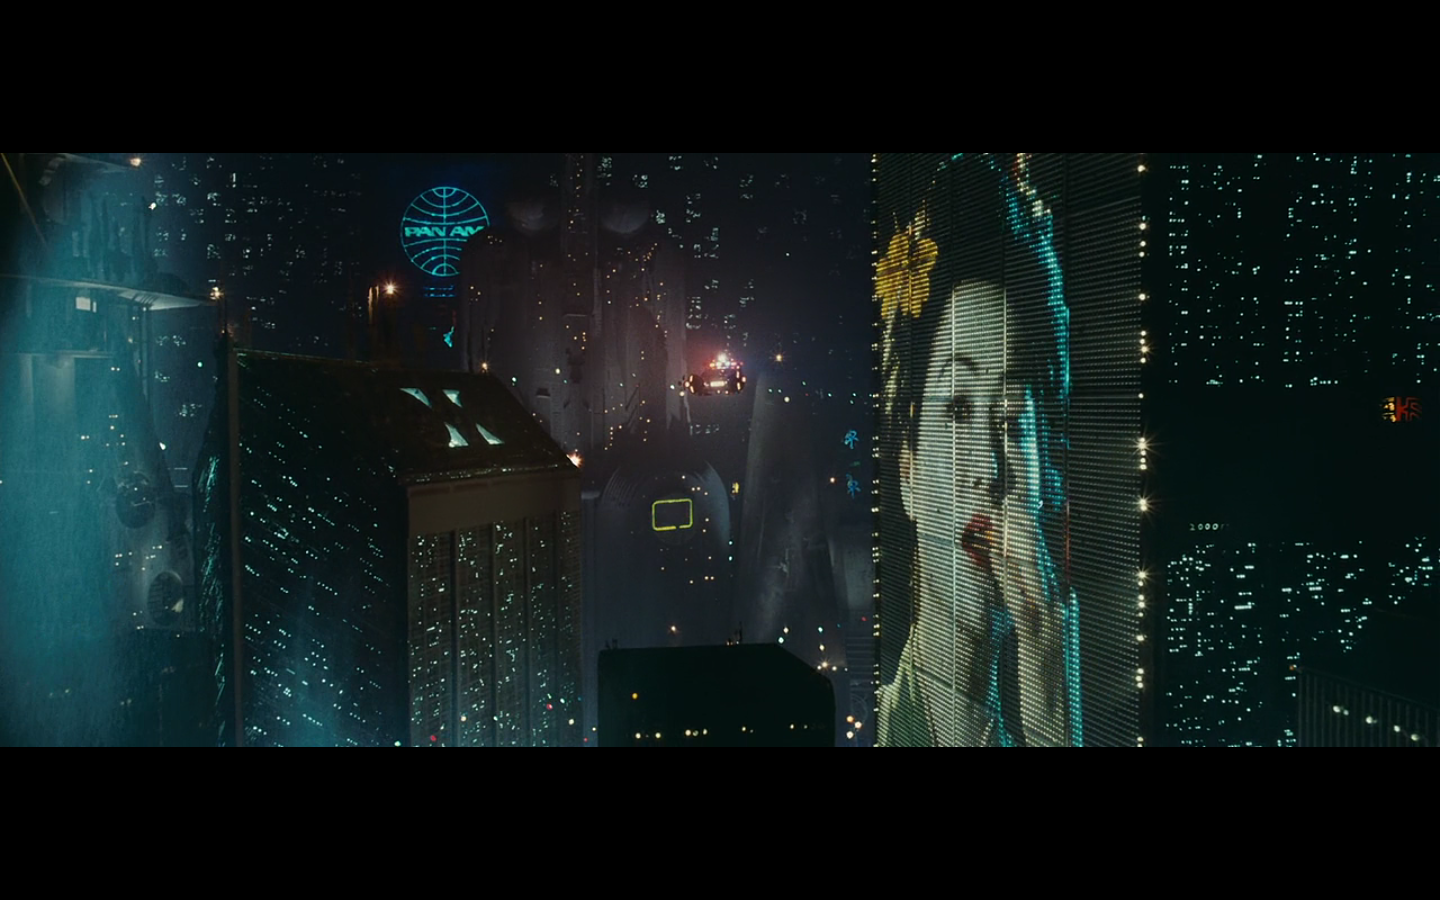 essay on blade runner Blade runner was considered one of the most significant and best made science fiction movies of its genre the movie was directed by ridley scott, produced by michael deeley, and stars harrison ford and rutger hauer.